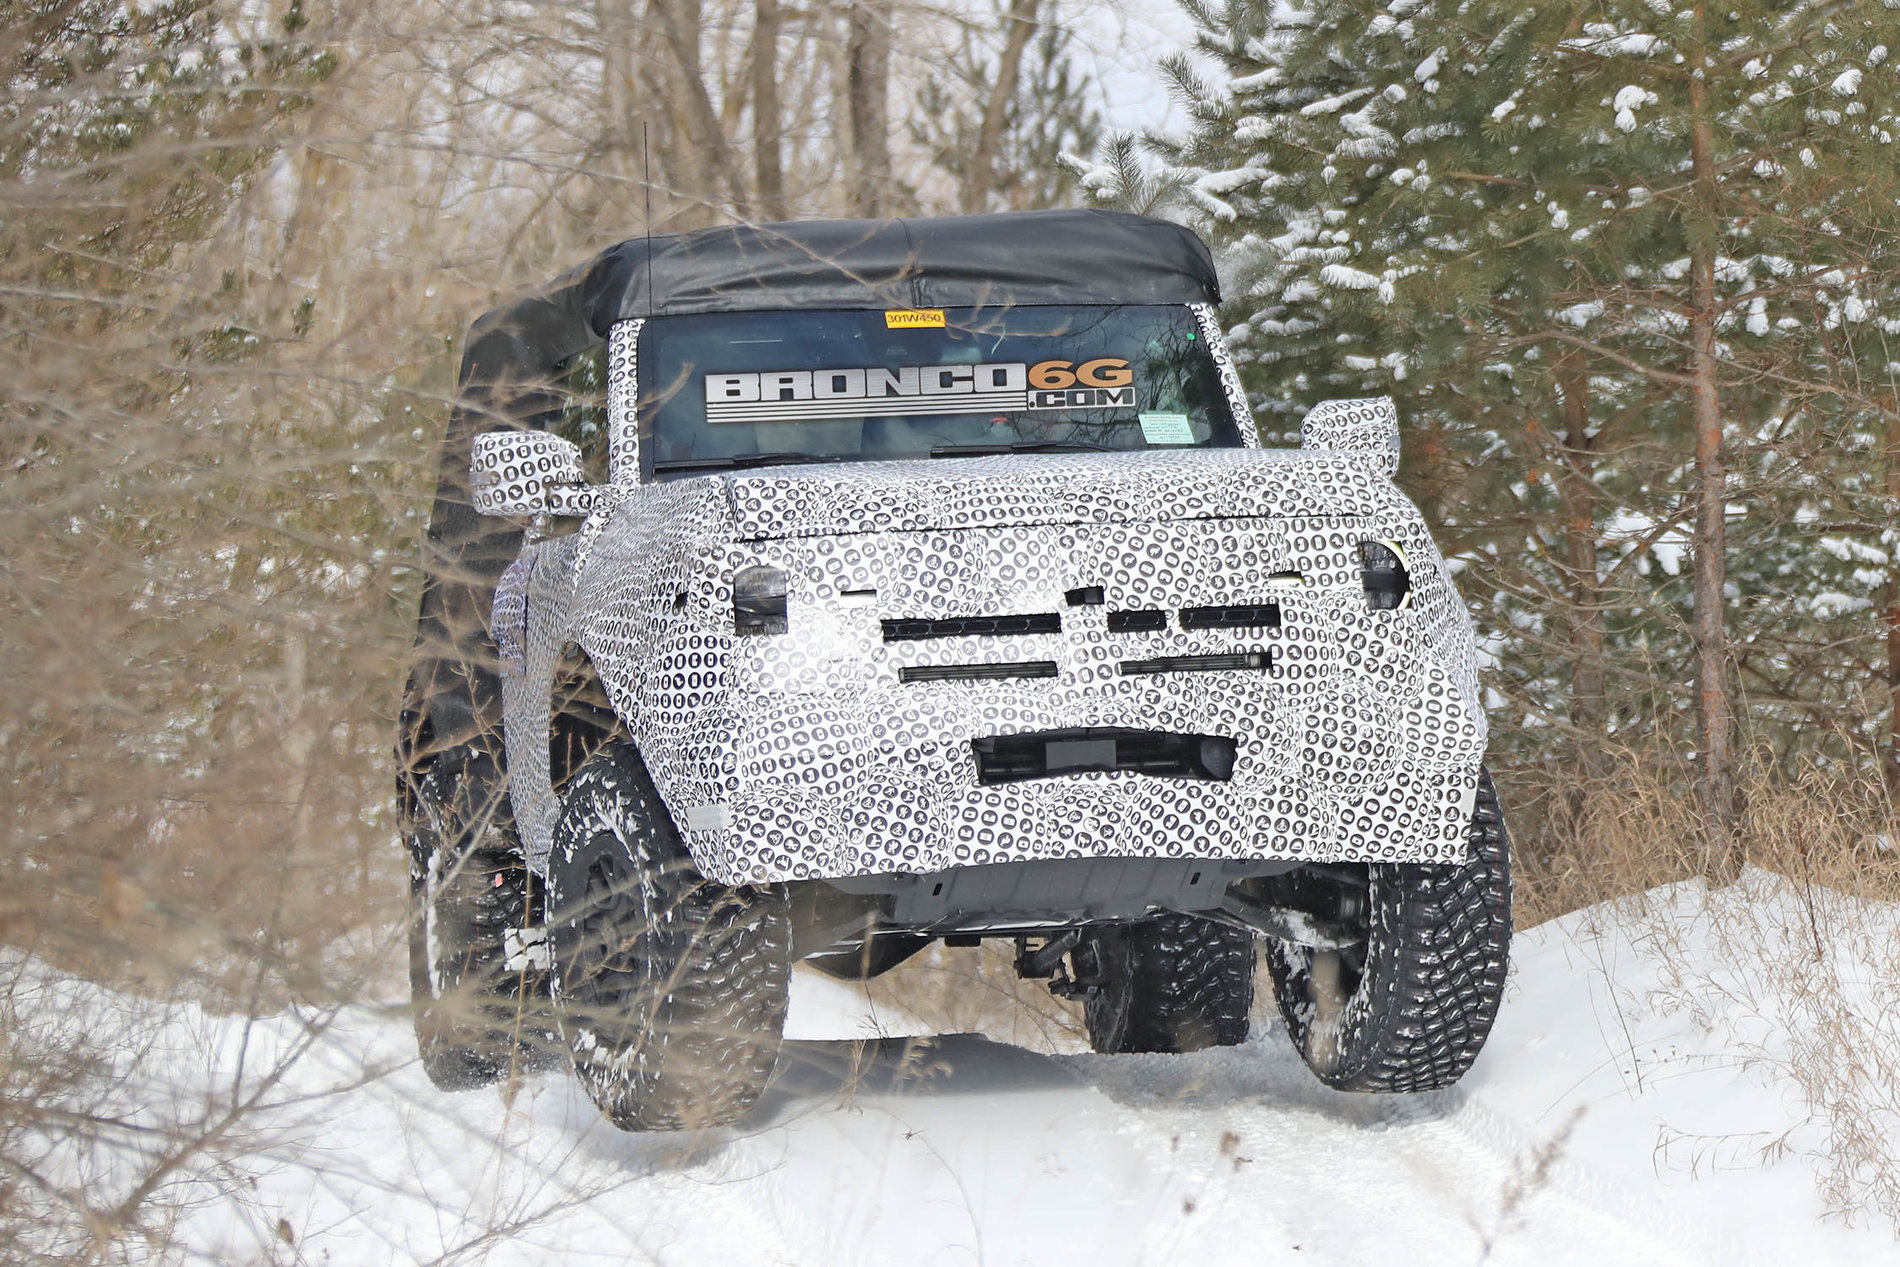 2021-Bronco_2door_OffRoad_003.jpg